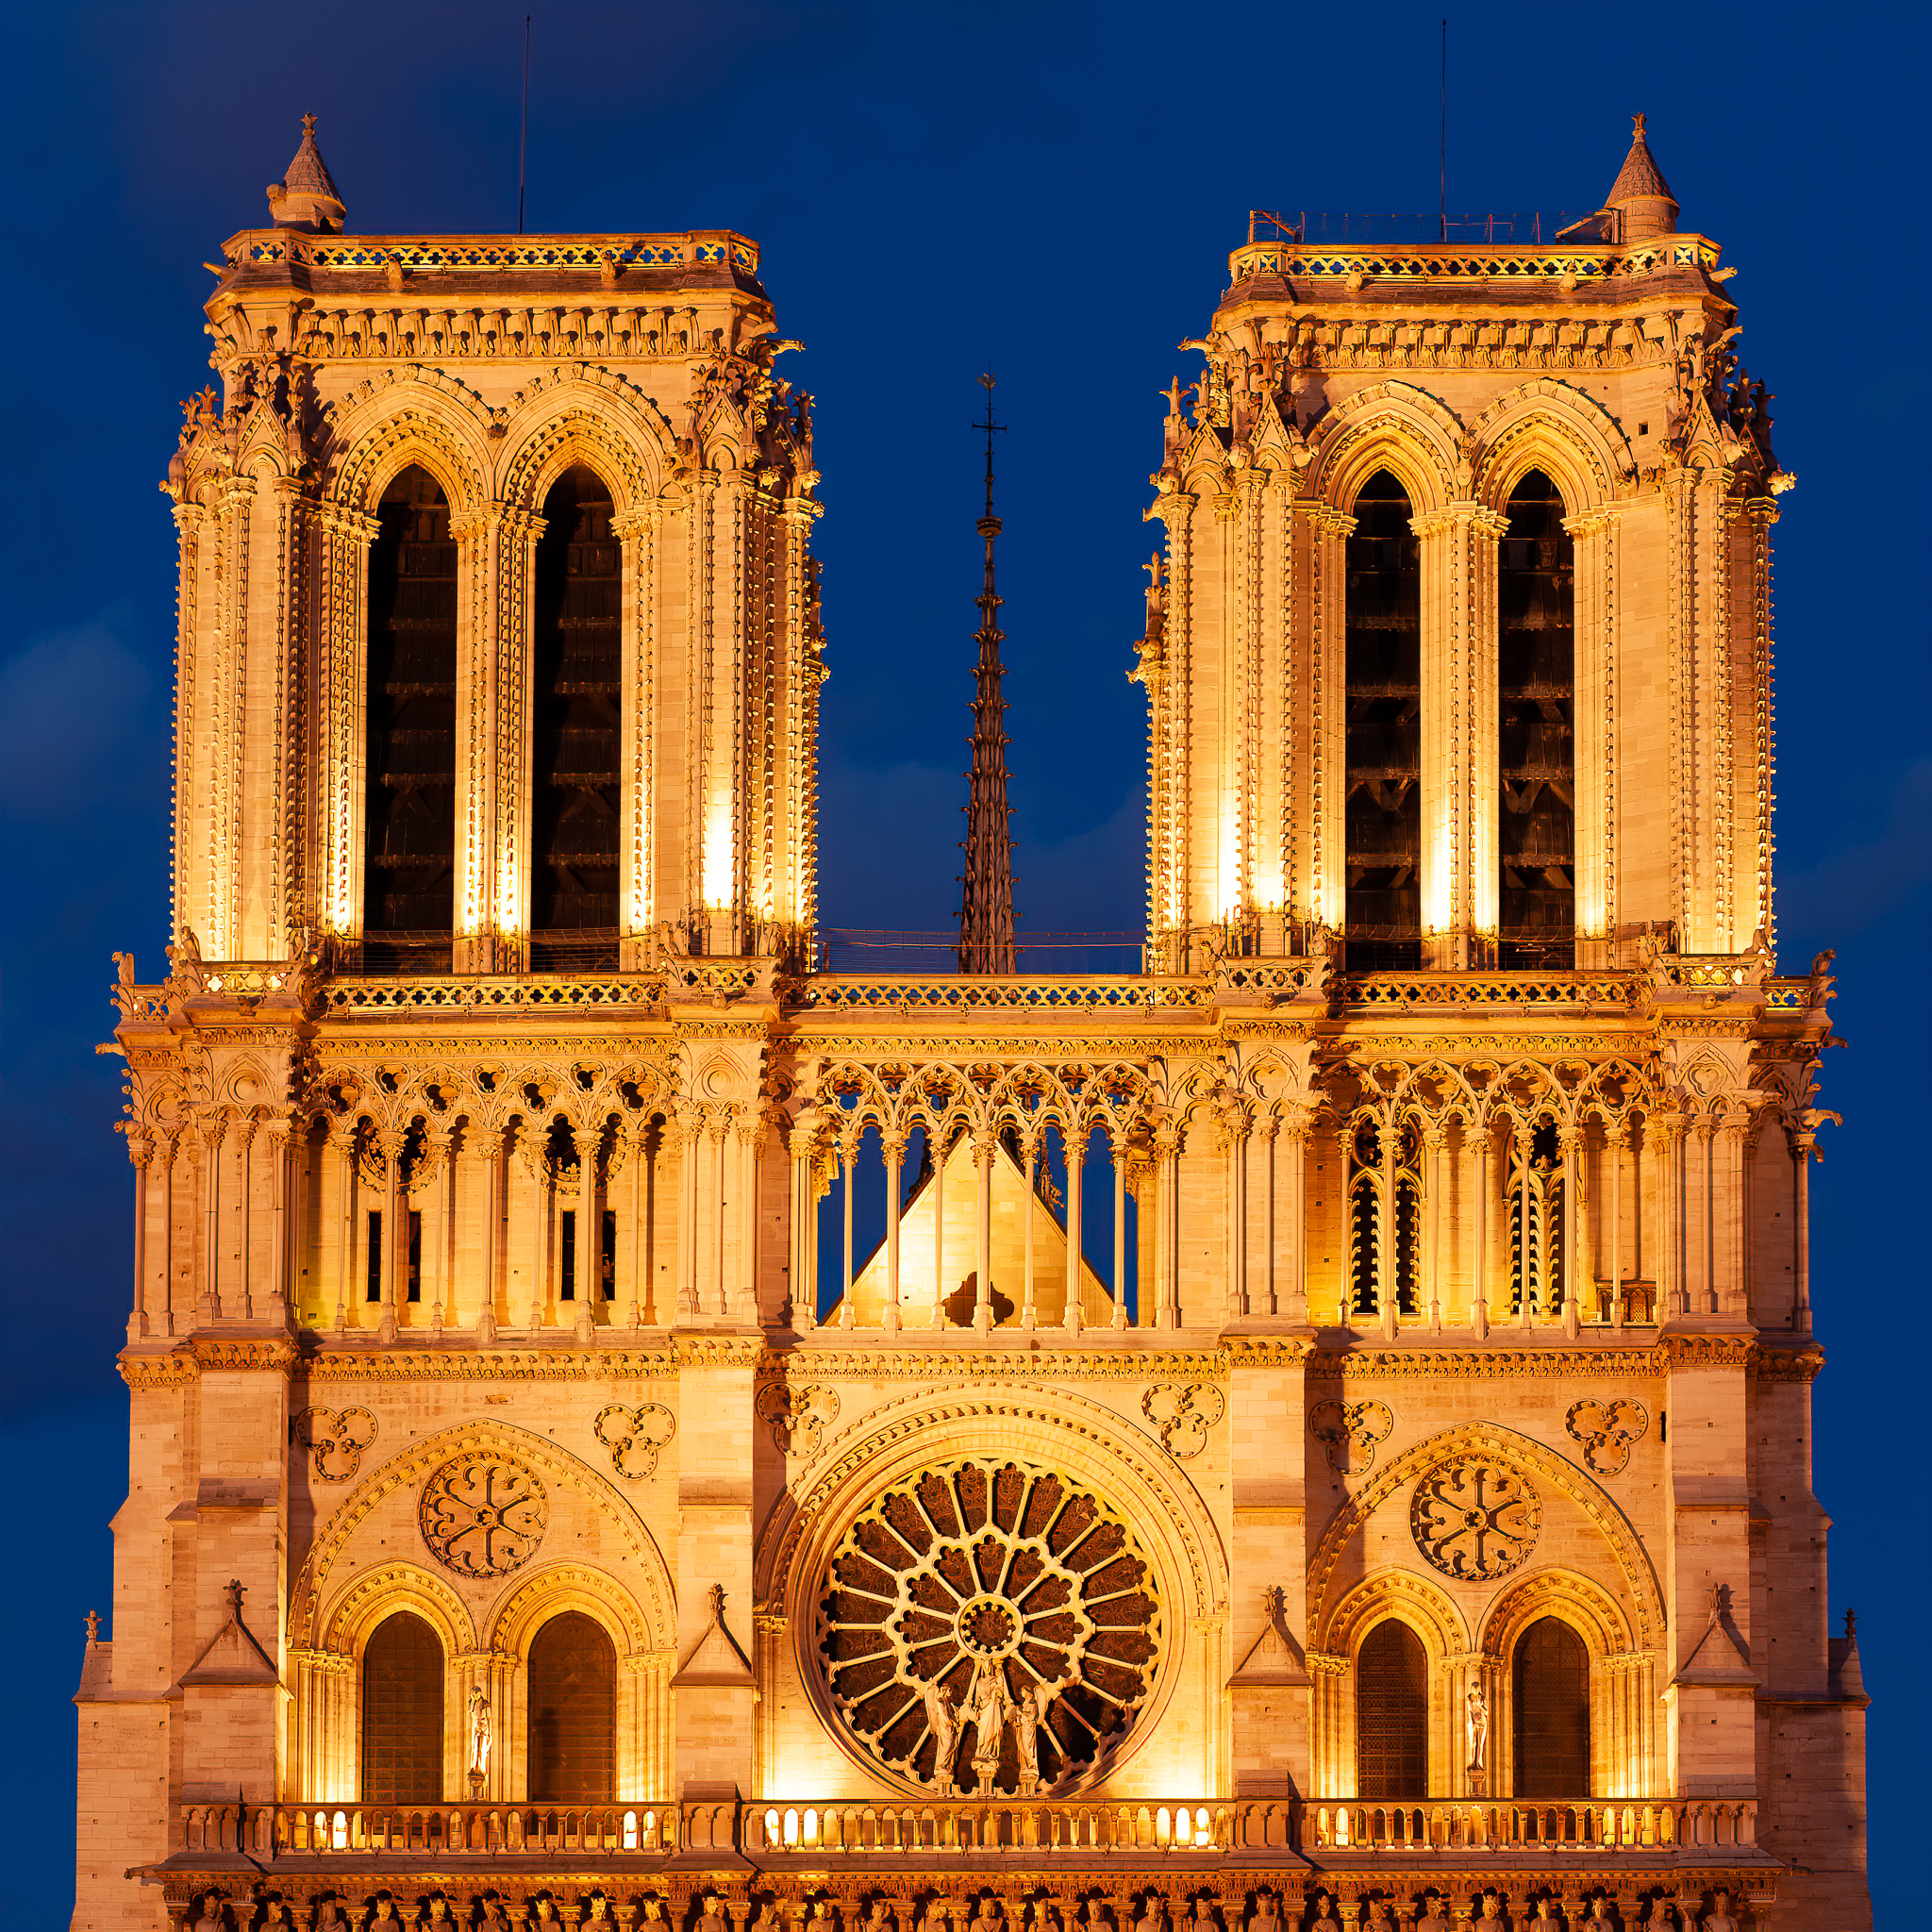 a photo of notre dame cathedral in paris at dusk